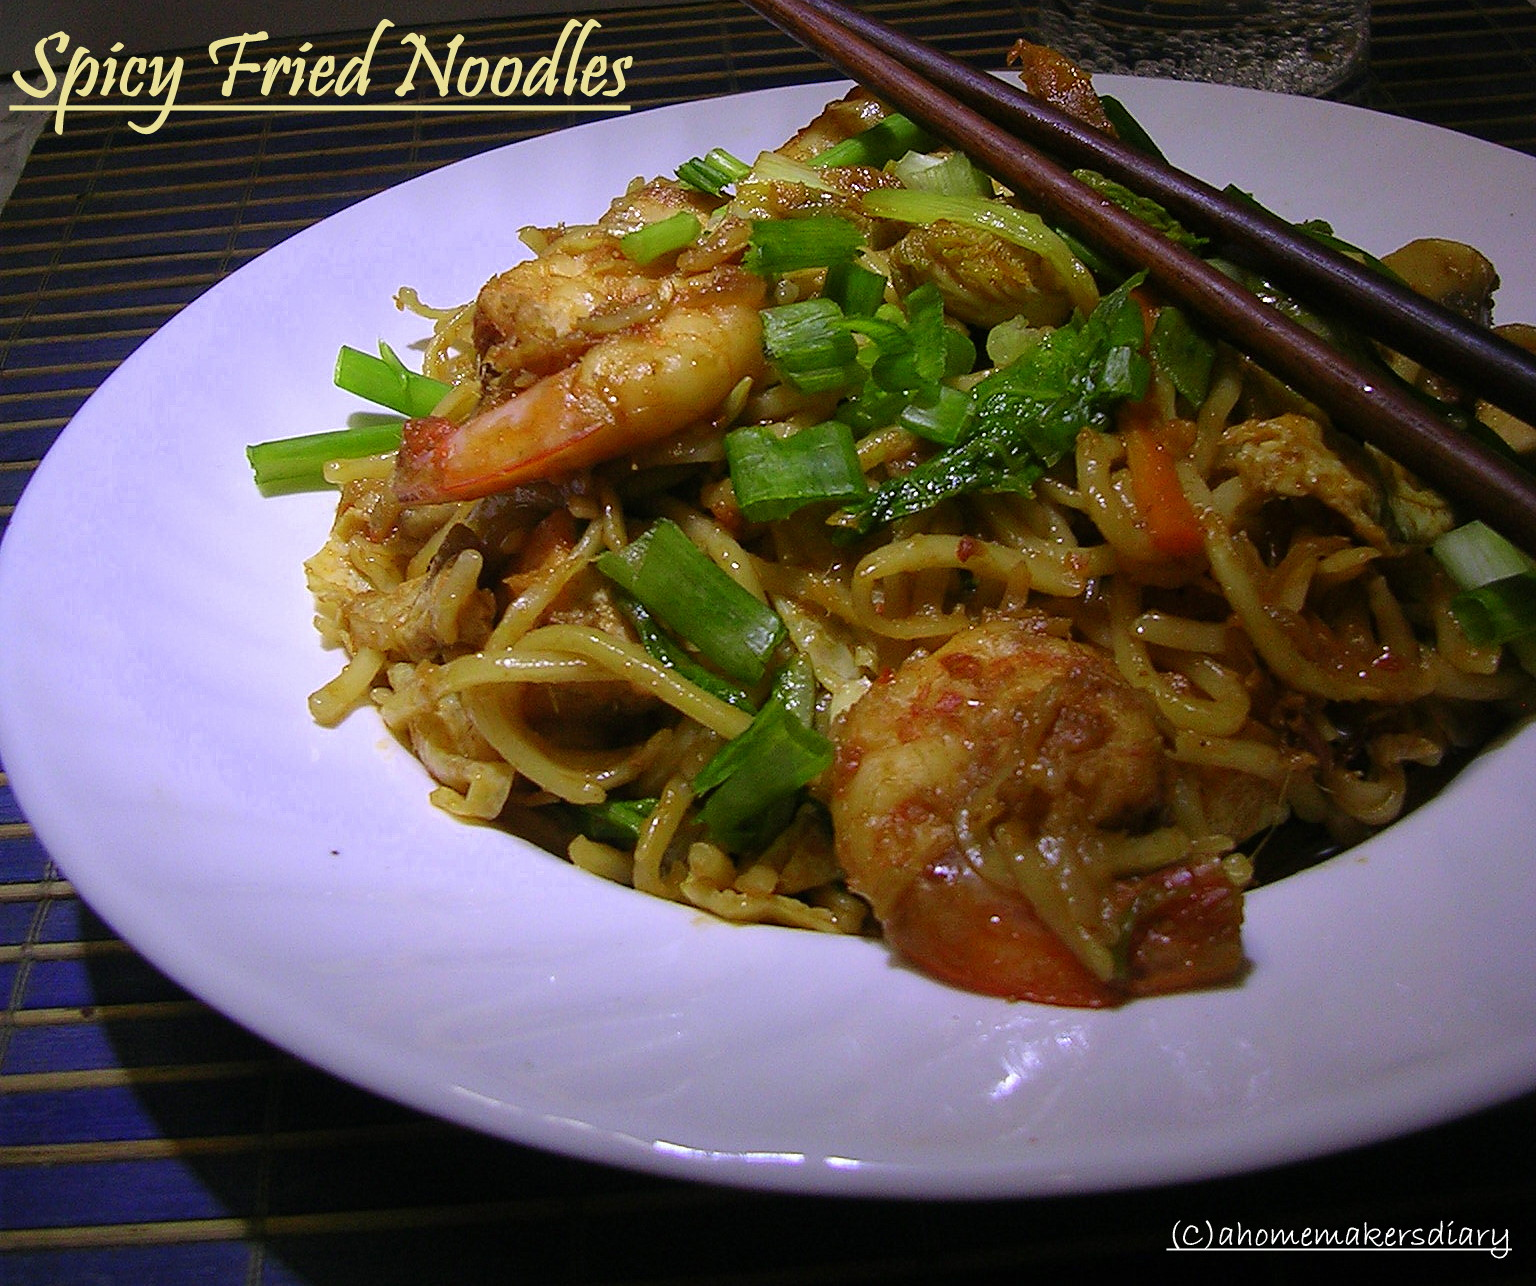 Spicy Fried Noodles/Mee Goreng (well almost) - A Homemaker's Diary